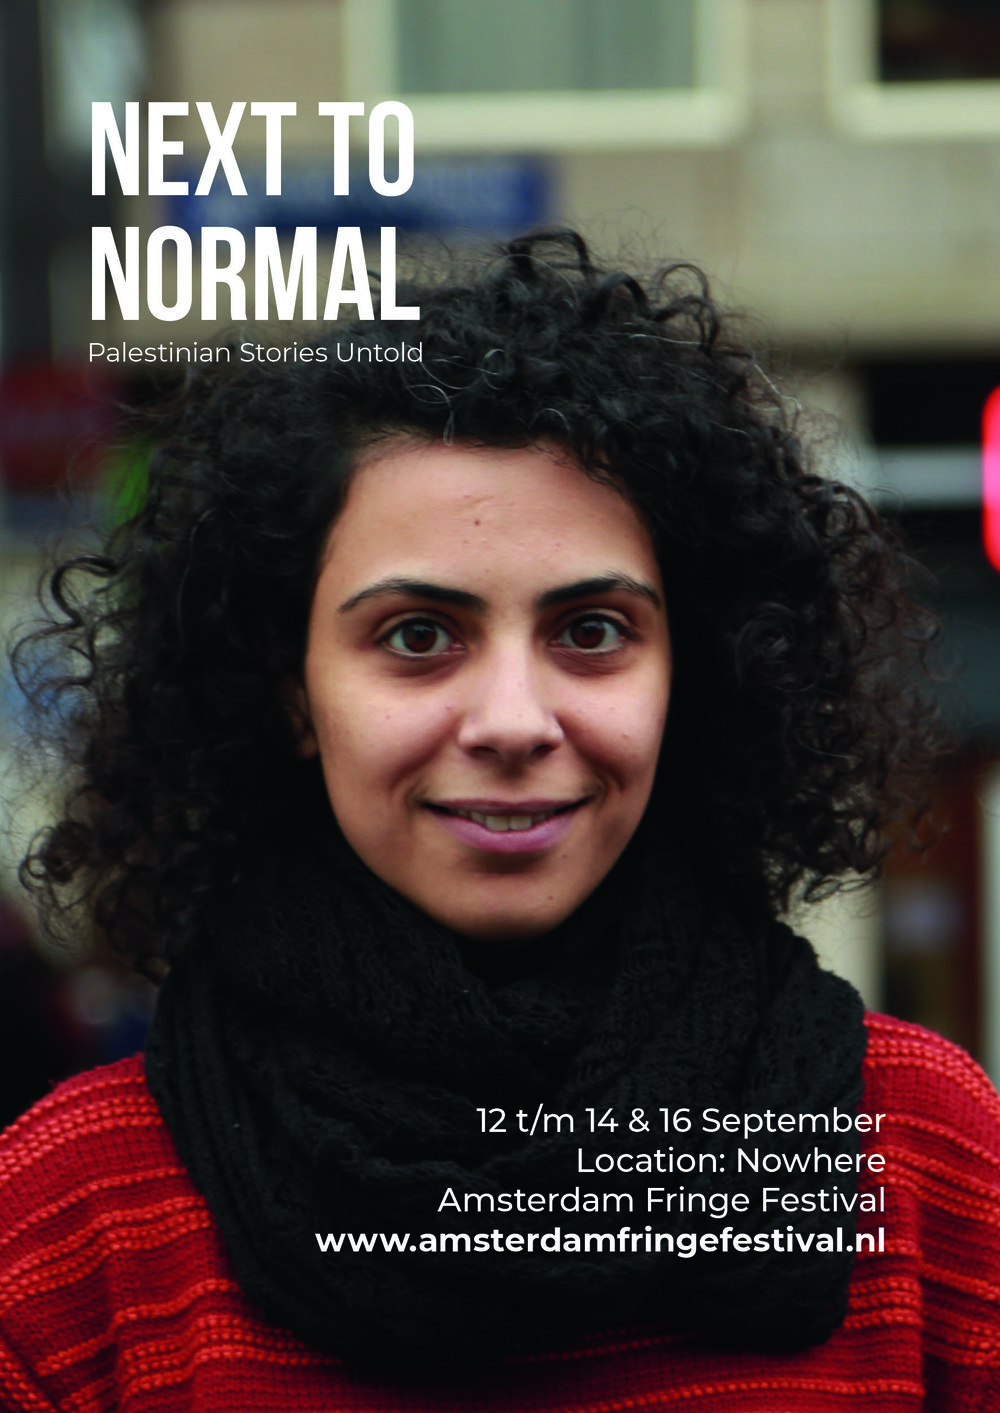 Next to Normal_Palestinian Stories Untold_eflyer.jpg